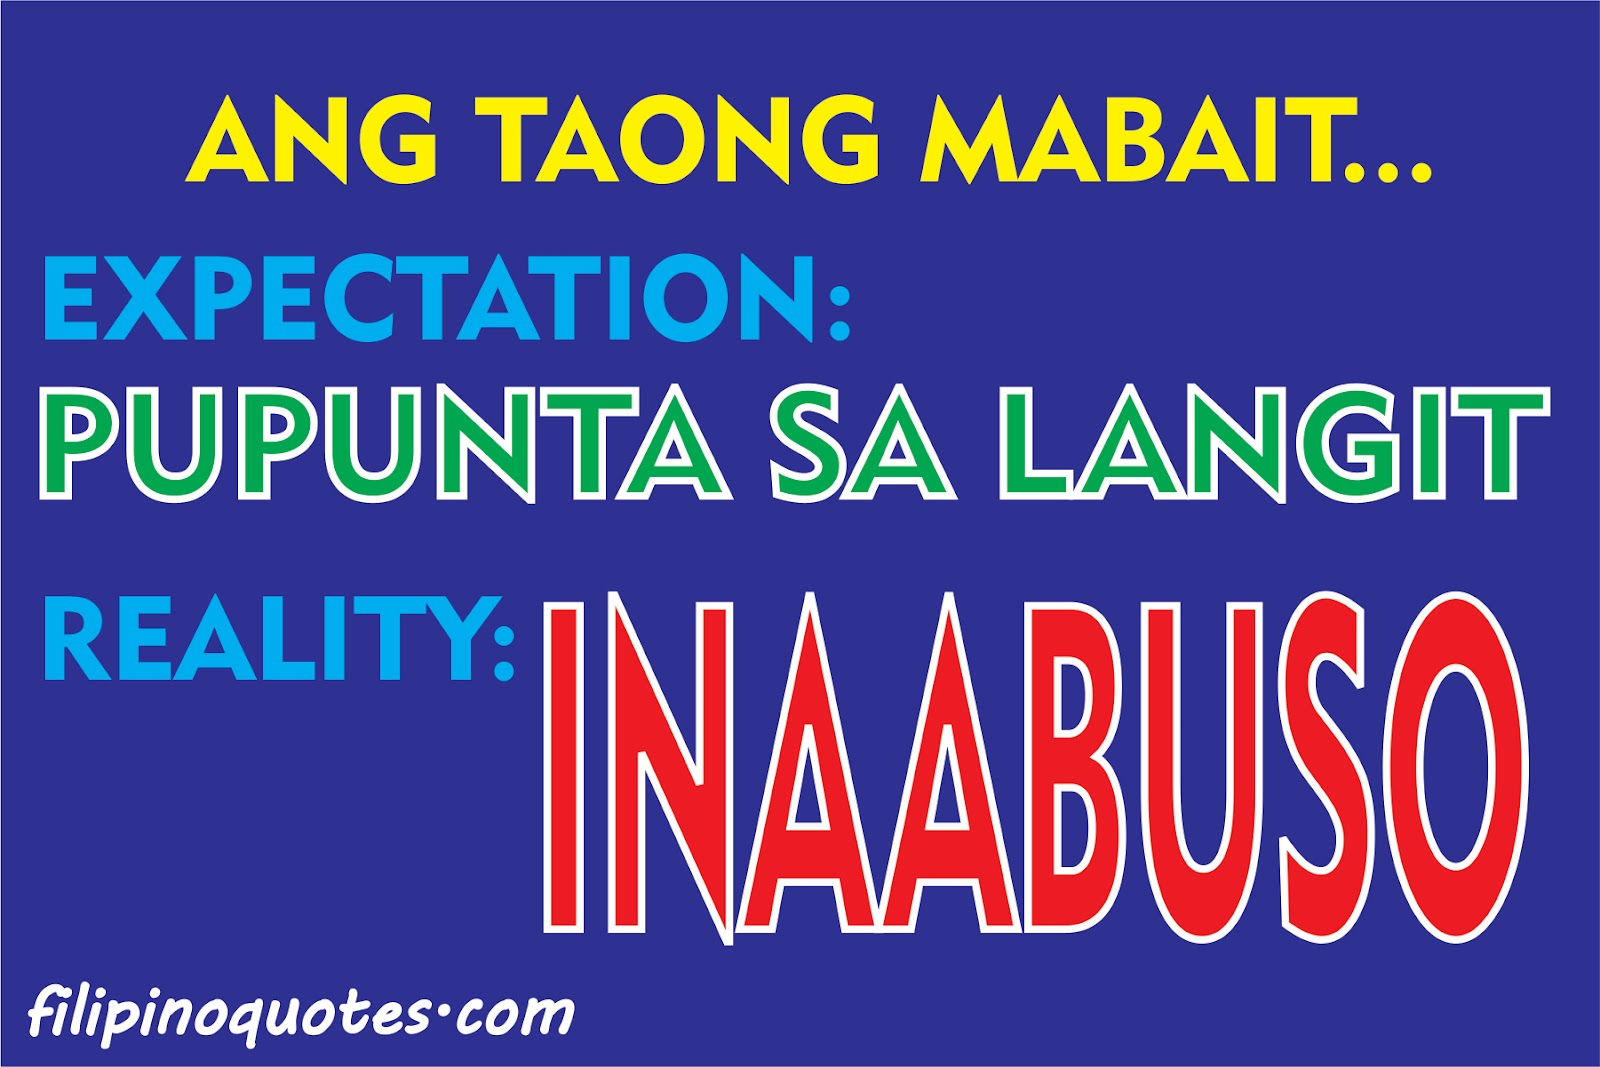 Tagalog Quotes About Friendship Crazy Friendship Quotes Tagalog Funny Quotes Tagalog Text